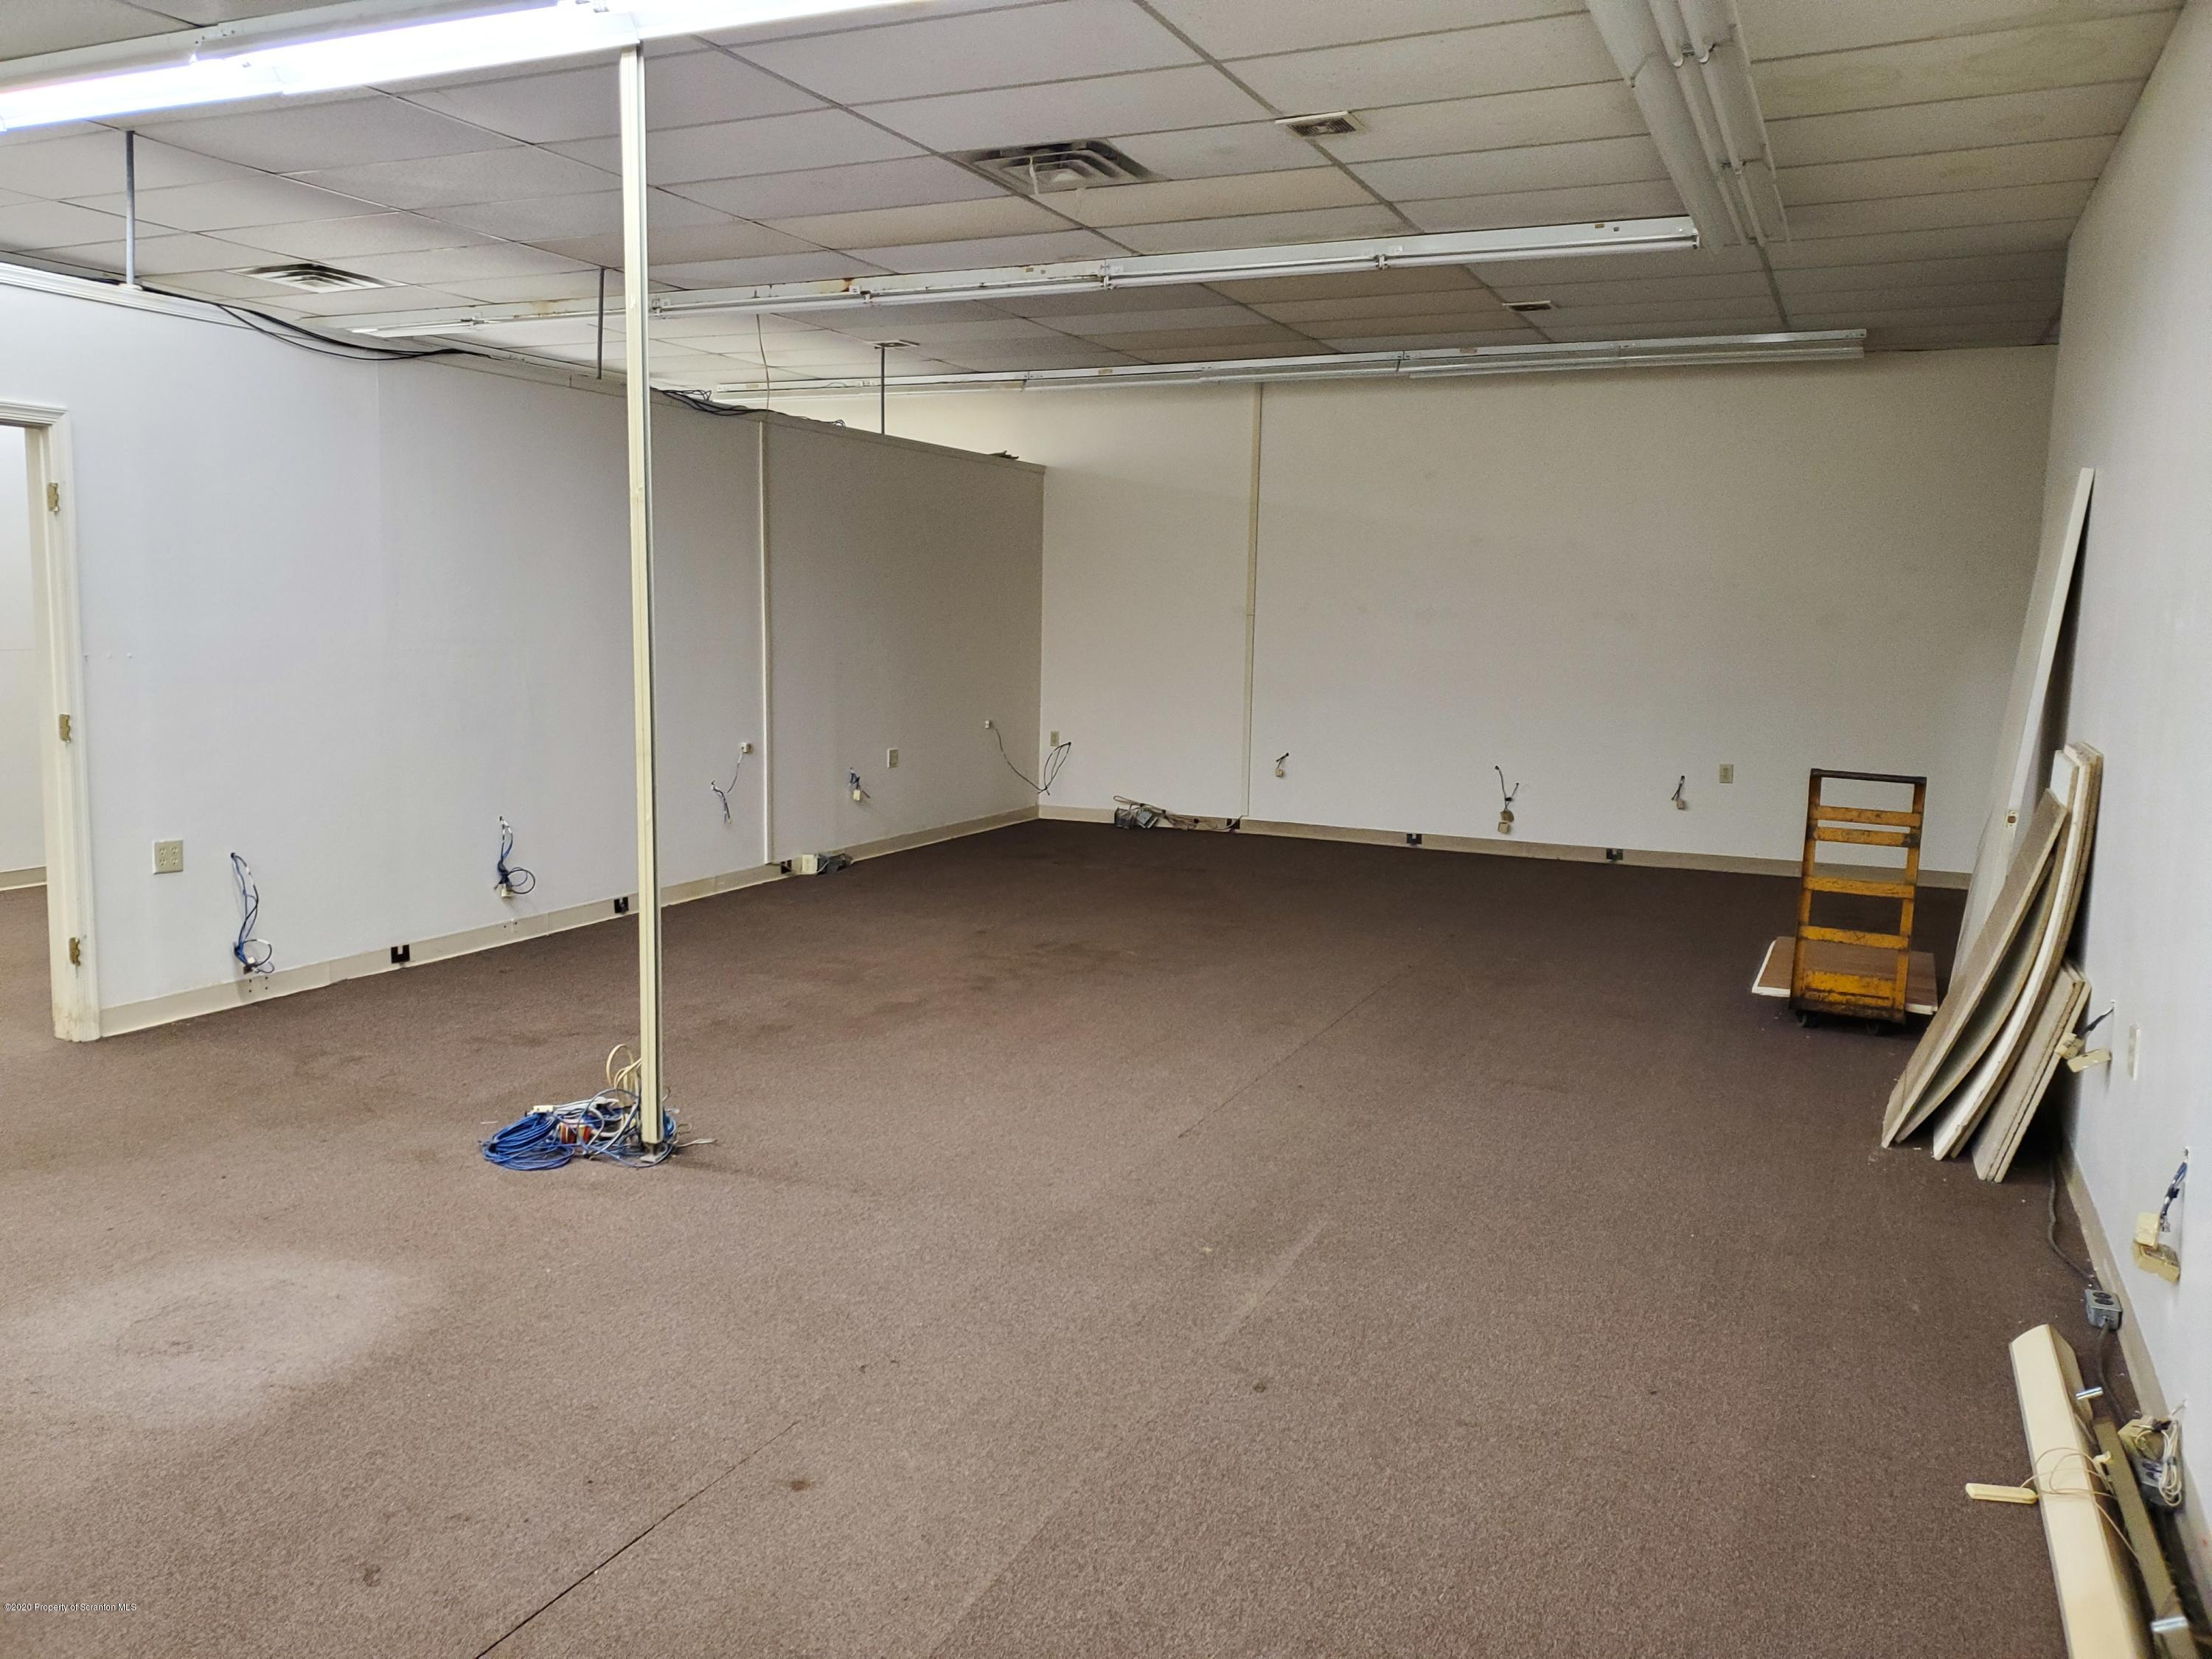 116 Monahan Ave, Dunmore, Pennsylvania 18512, ,1 BathroomBathrooms,Commercial,For Lease,Monahan,20-3815